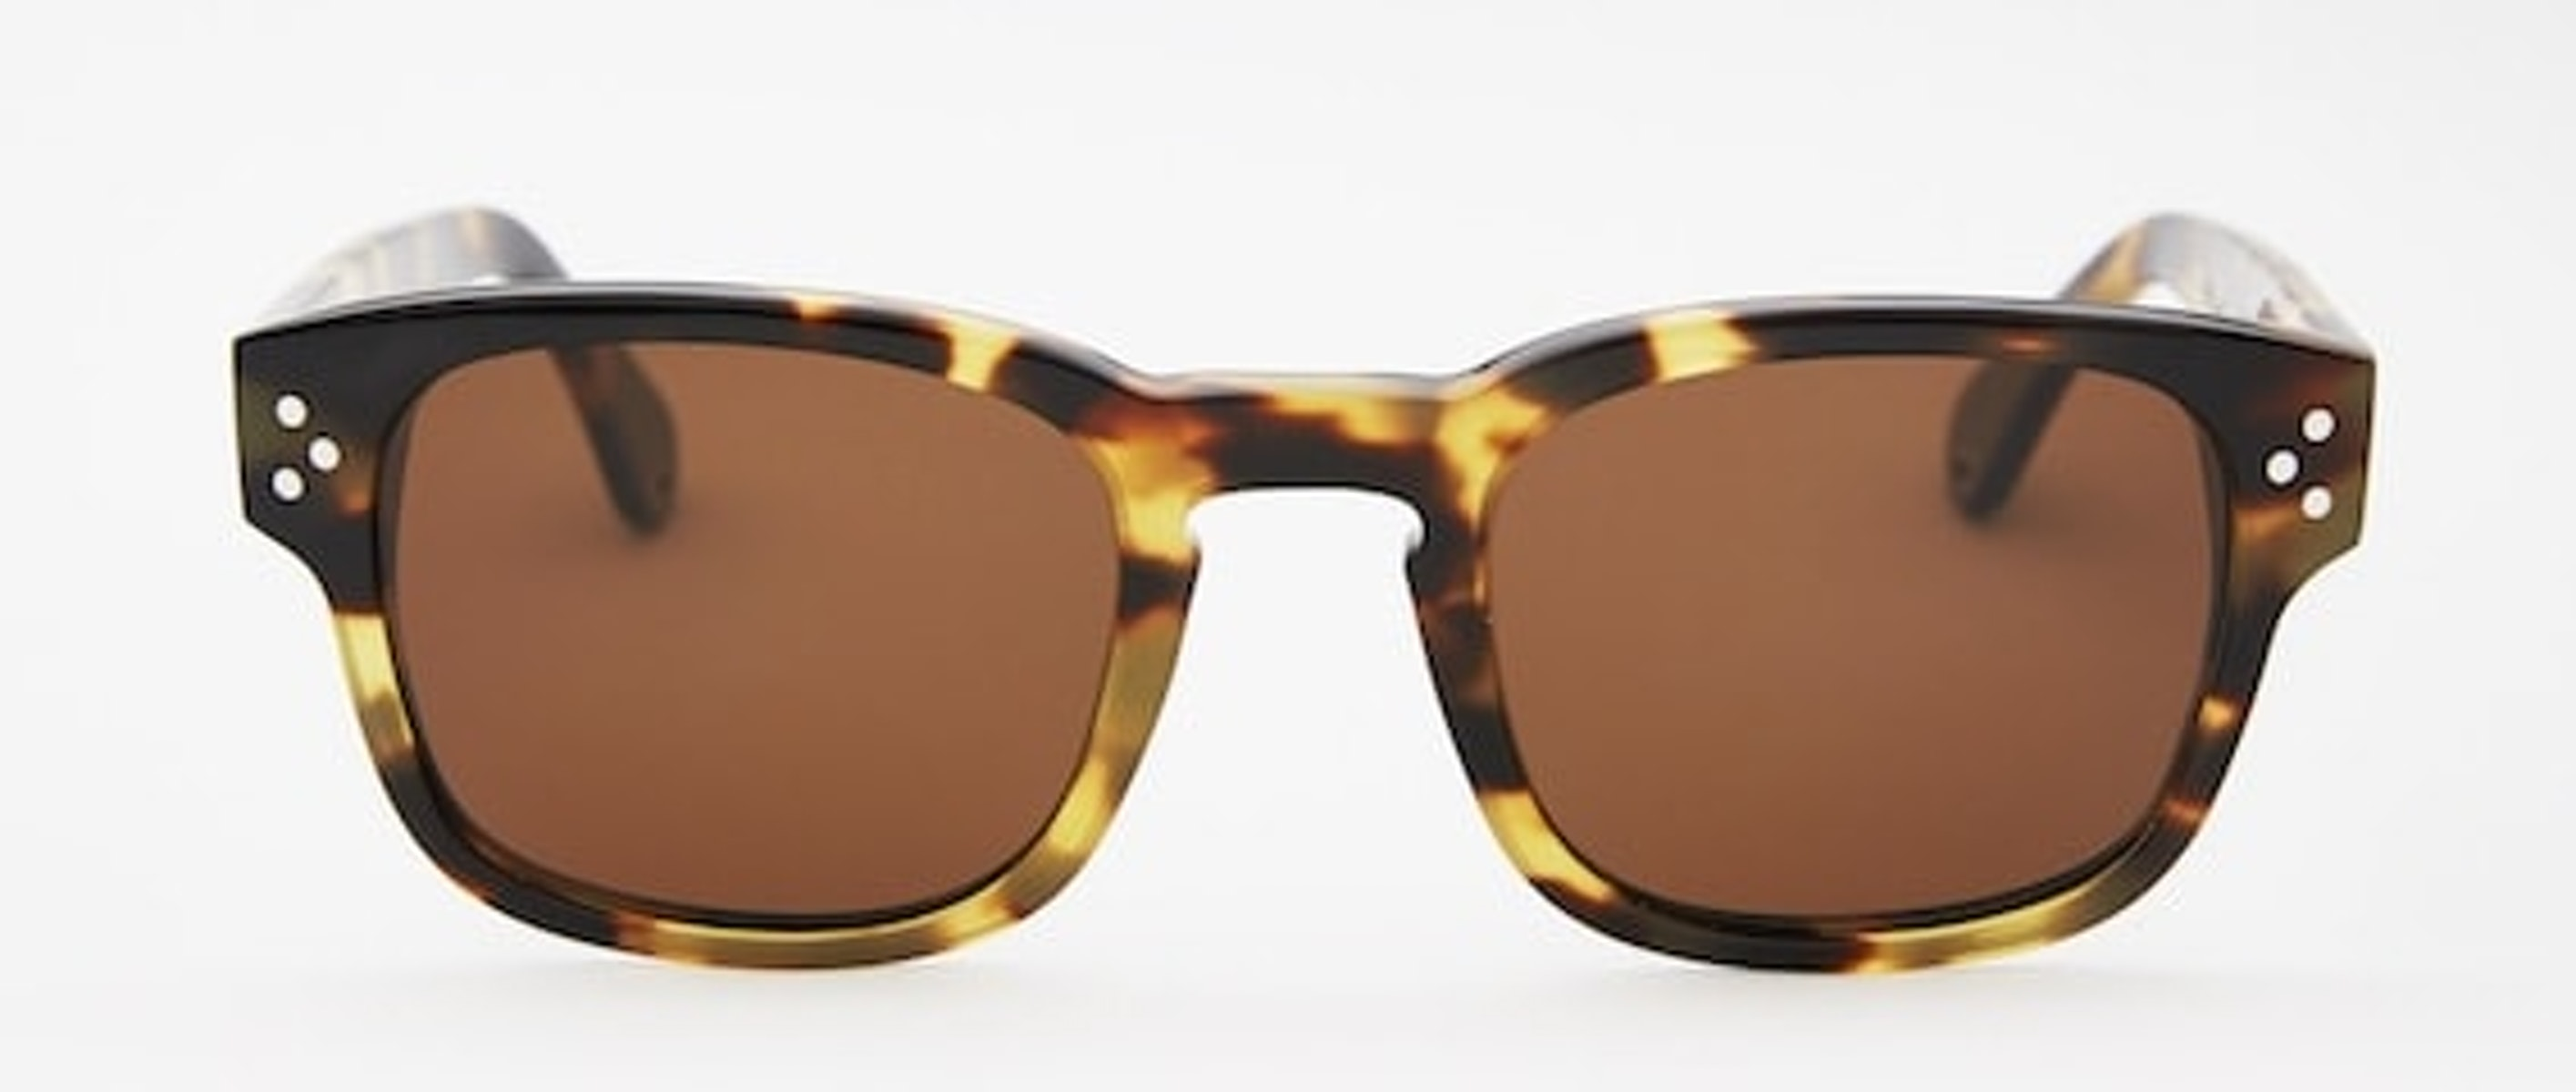 InStitchu Accessories sunglasses Pacifico Optical Ashley Honey Tortoise with Polarised Brown Lens